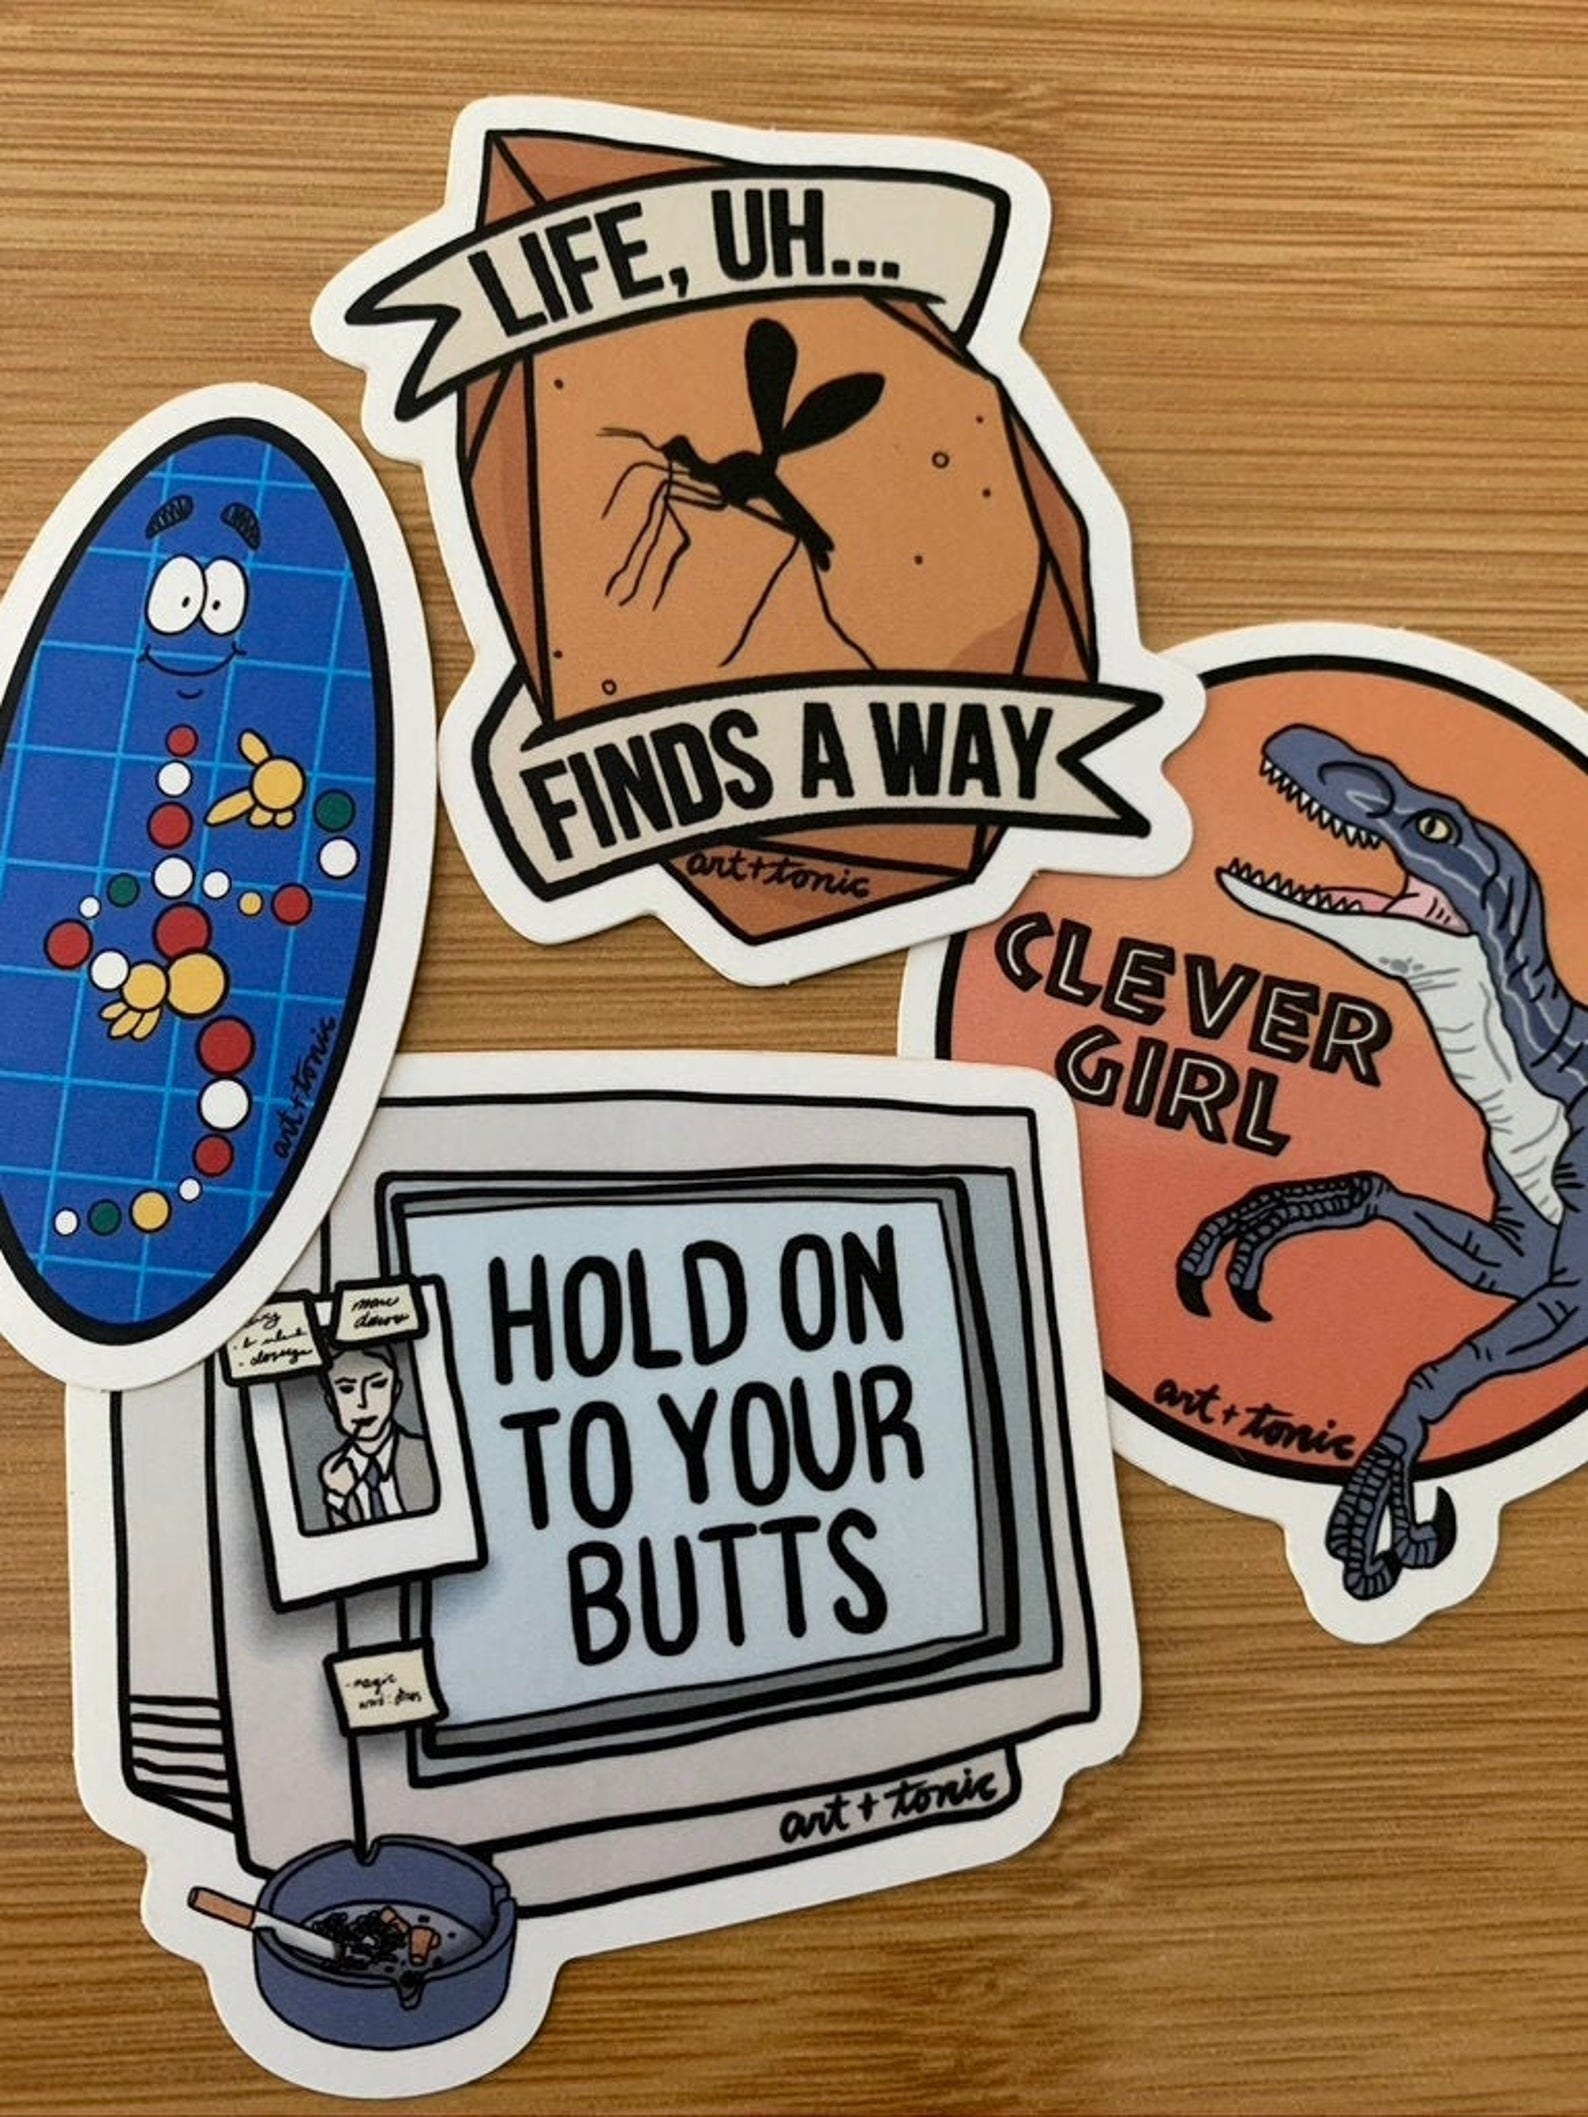 """four jurassic park stickers: one with a mosquito that says """"life, uh, finds a way"""", one with a velociraptor that says """"clever girl"""" one of a computer that says """"hold on to your butts"""" and one of the DNA illustration from the movie"""